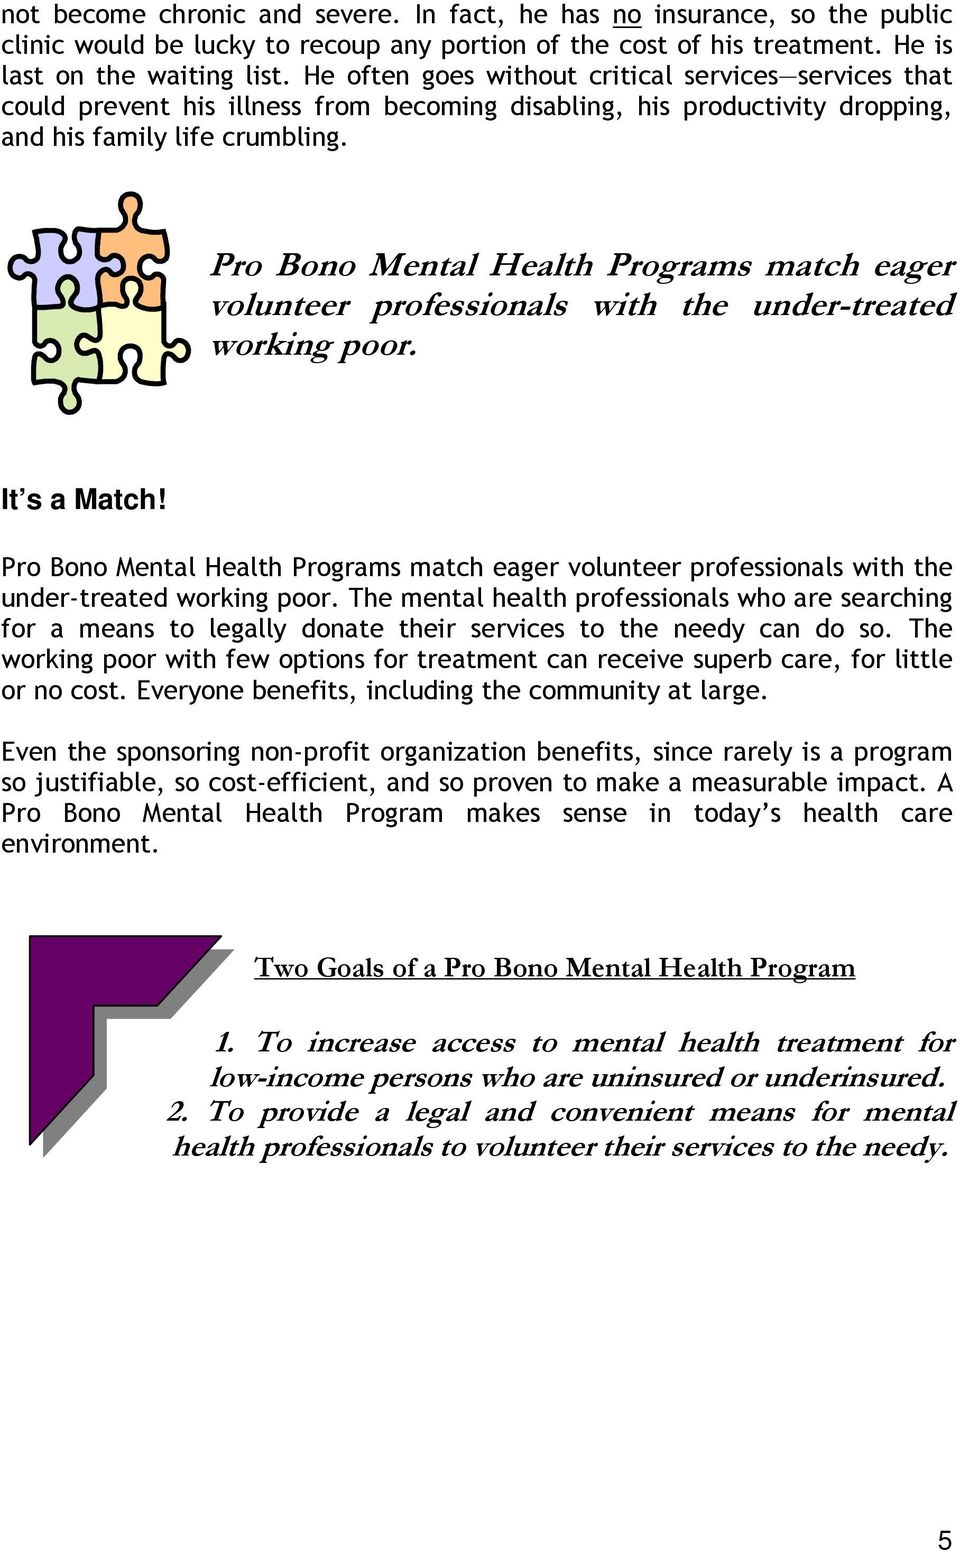 Pro Bono Mental Health Programs match eager volunteer professionals with the under-treated working poor. It s a Match!